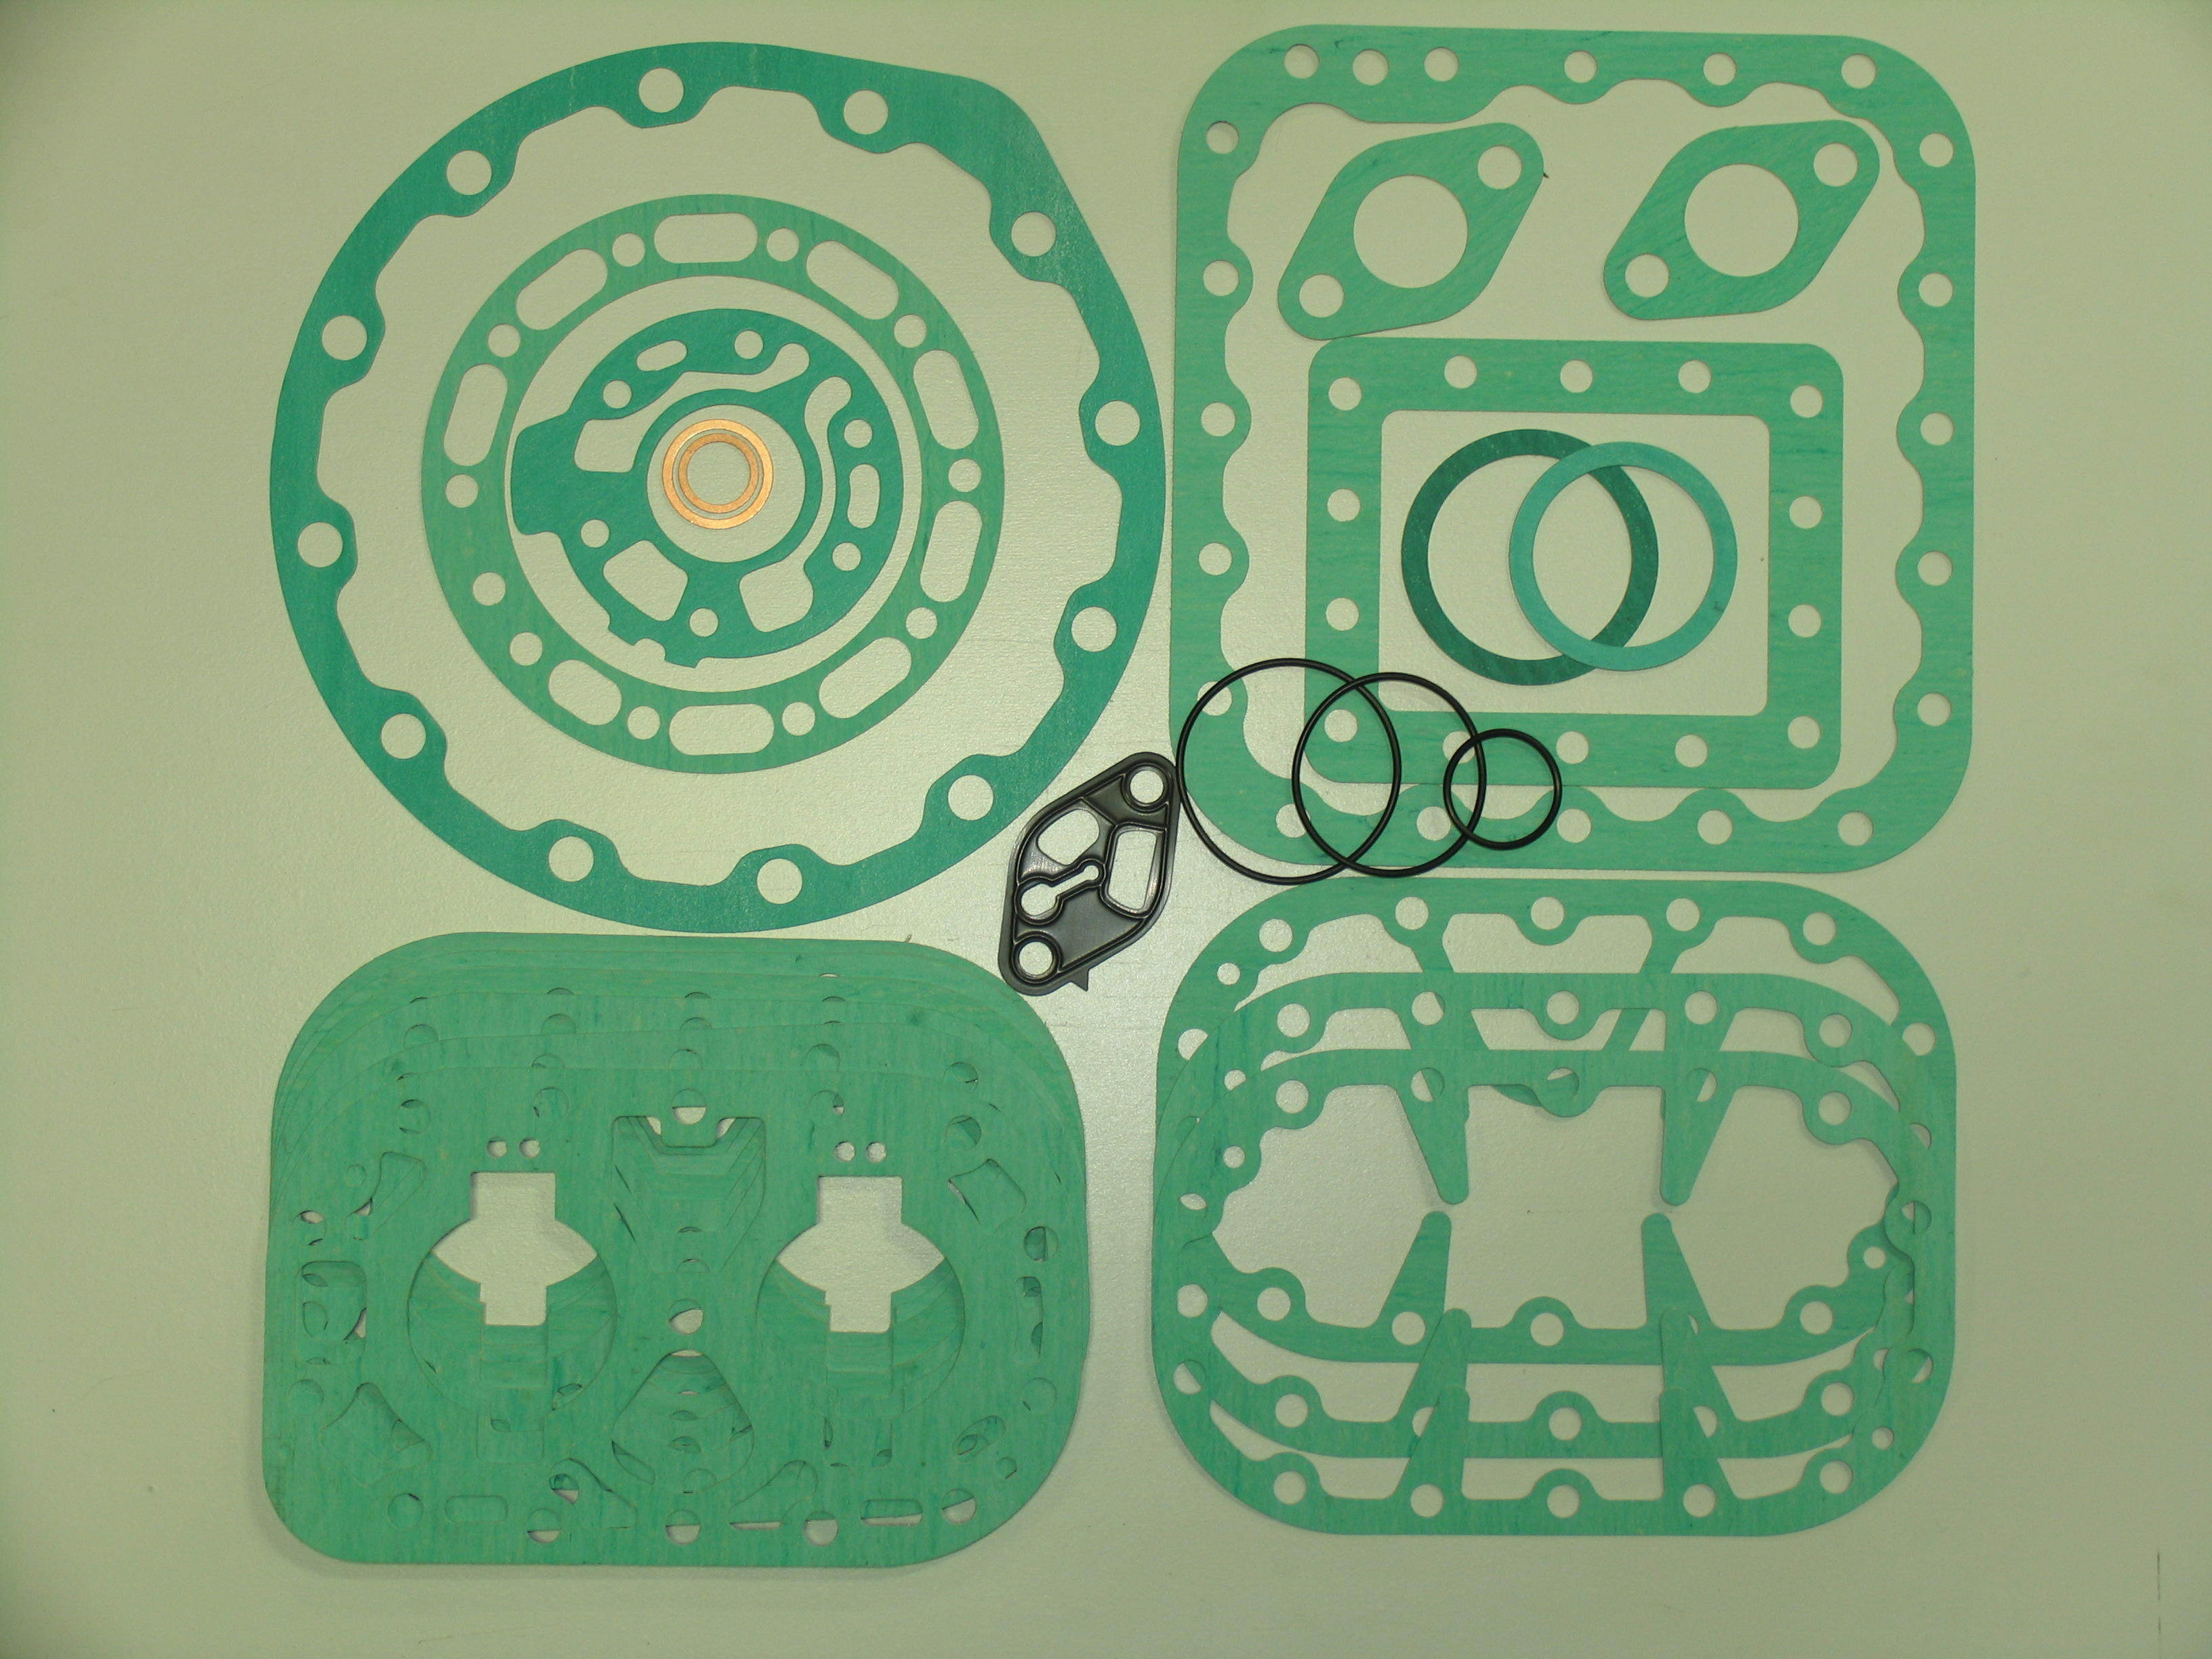 KIT-5317A-2 Gasket Kit; 4D Delta R/N 998-2669-00